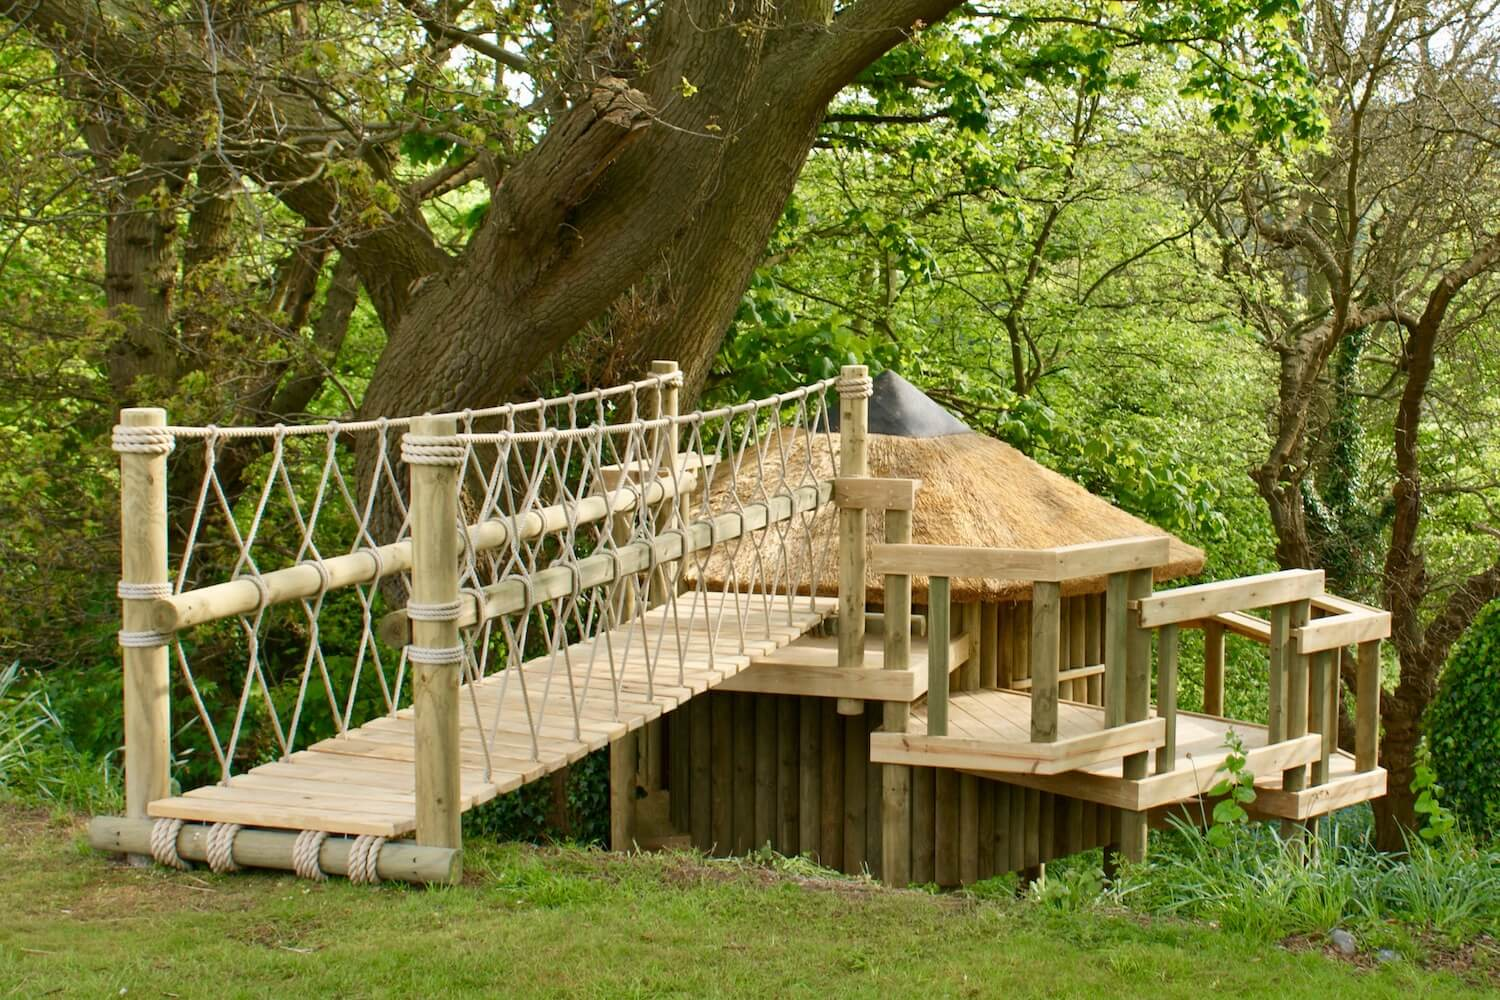 'Self-build' tree houses